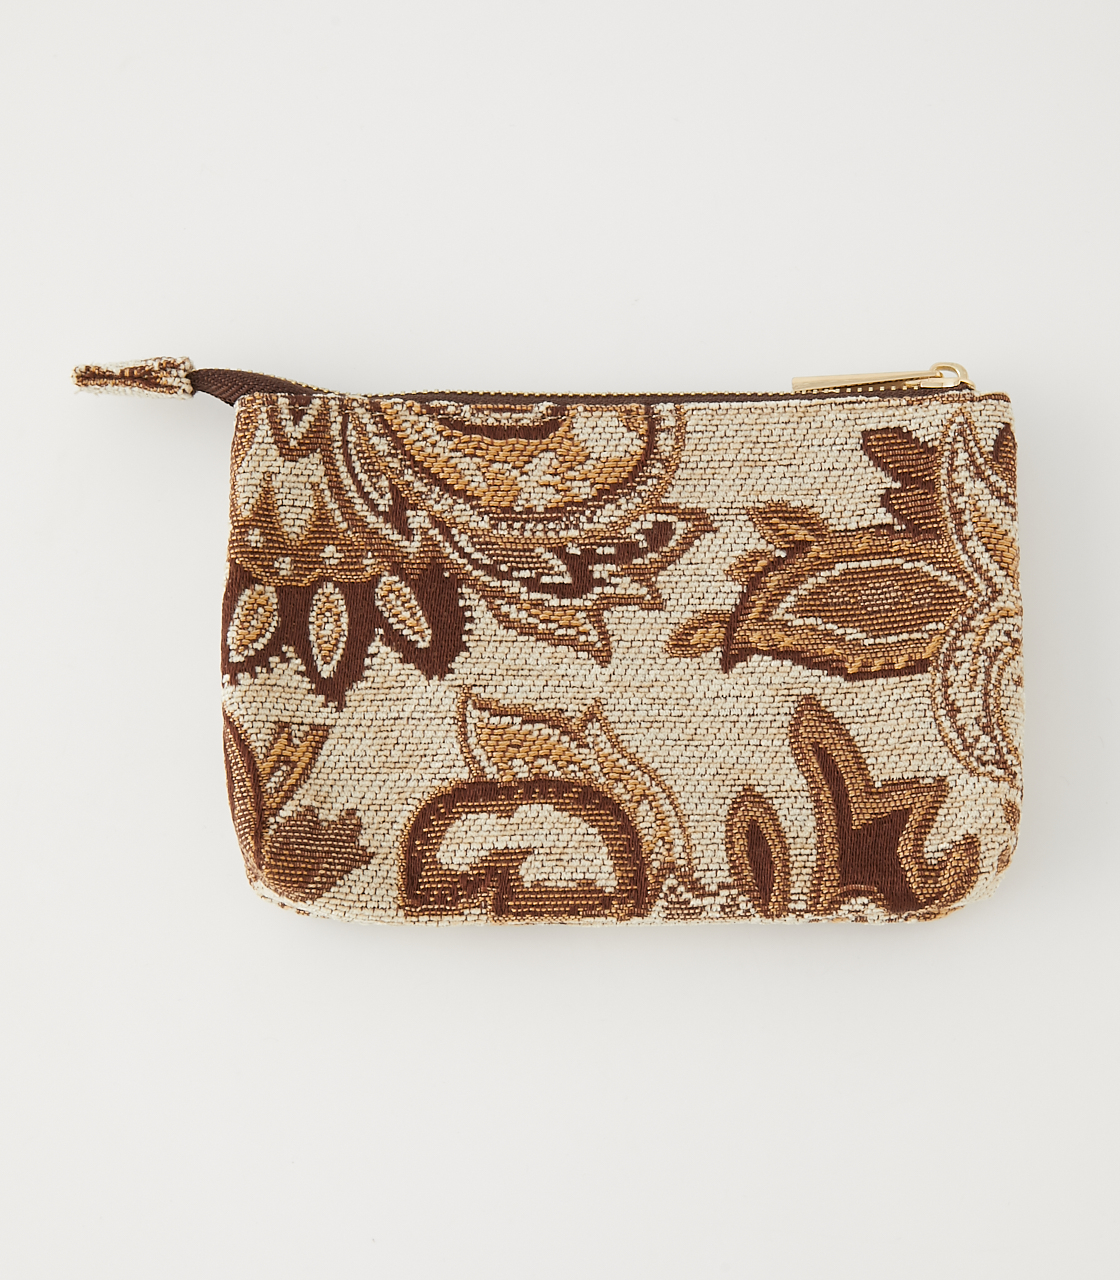 PAISLEY JACQUARD POUCH/ペイズリージャガードポーチ 詳細画像 柄BEG 3